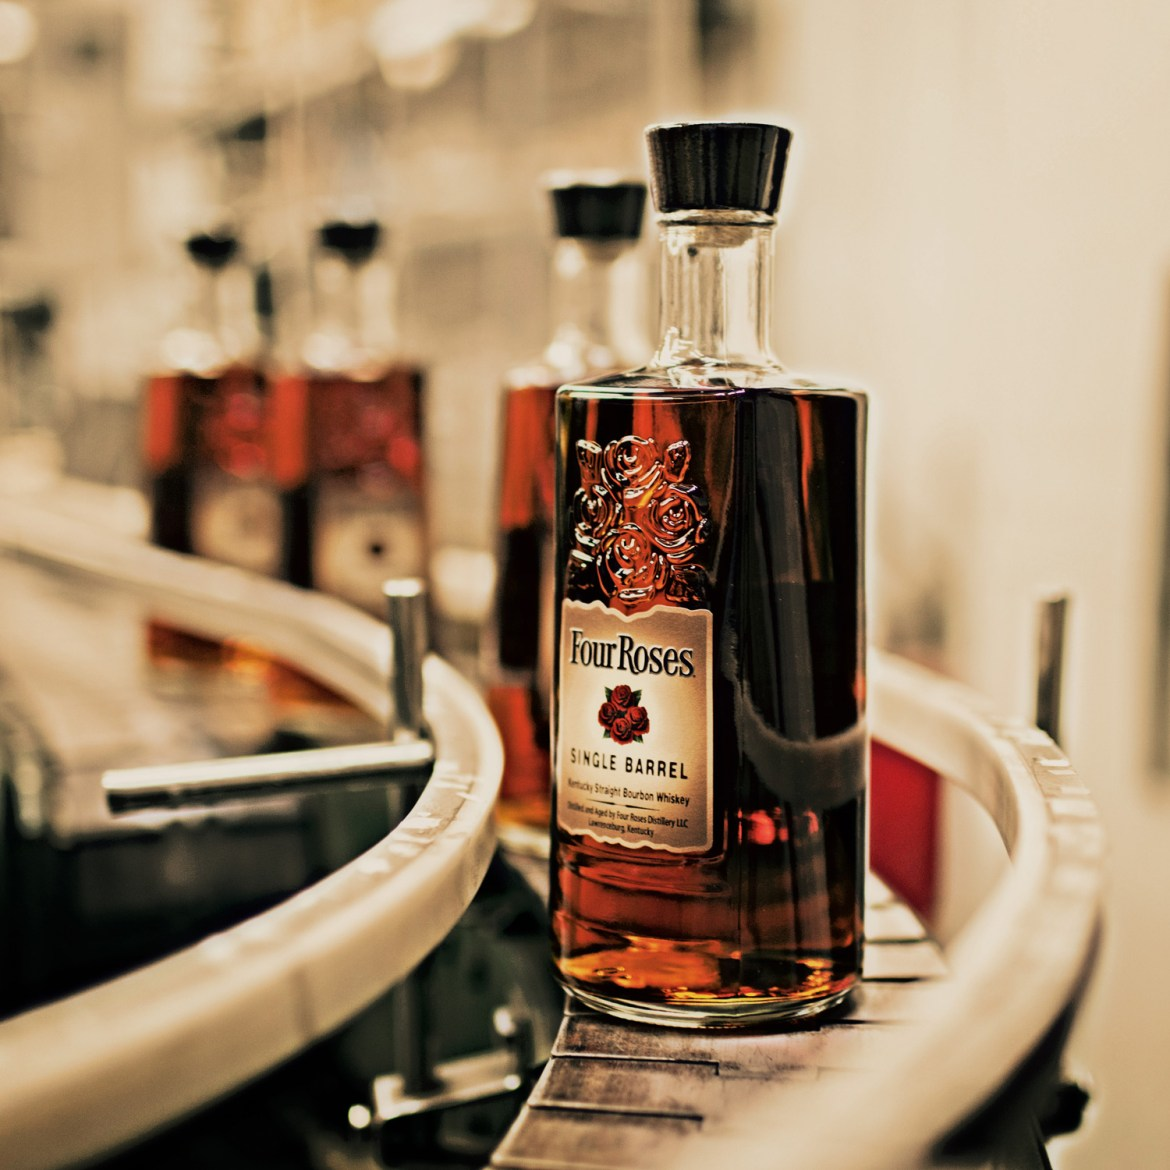 SingleBarrellBottlingLine3 - Four Roses